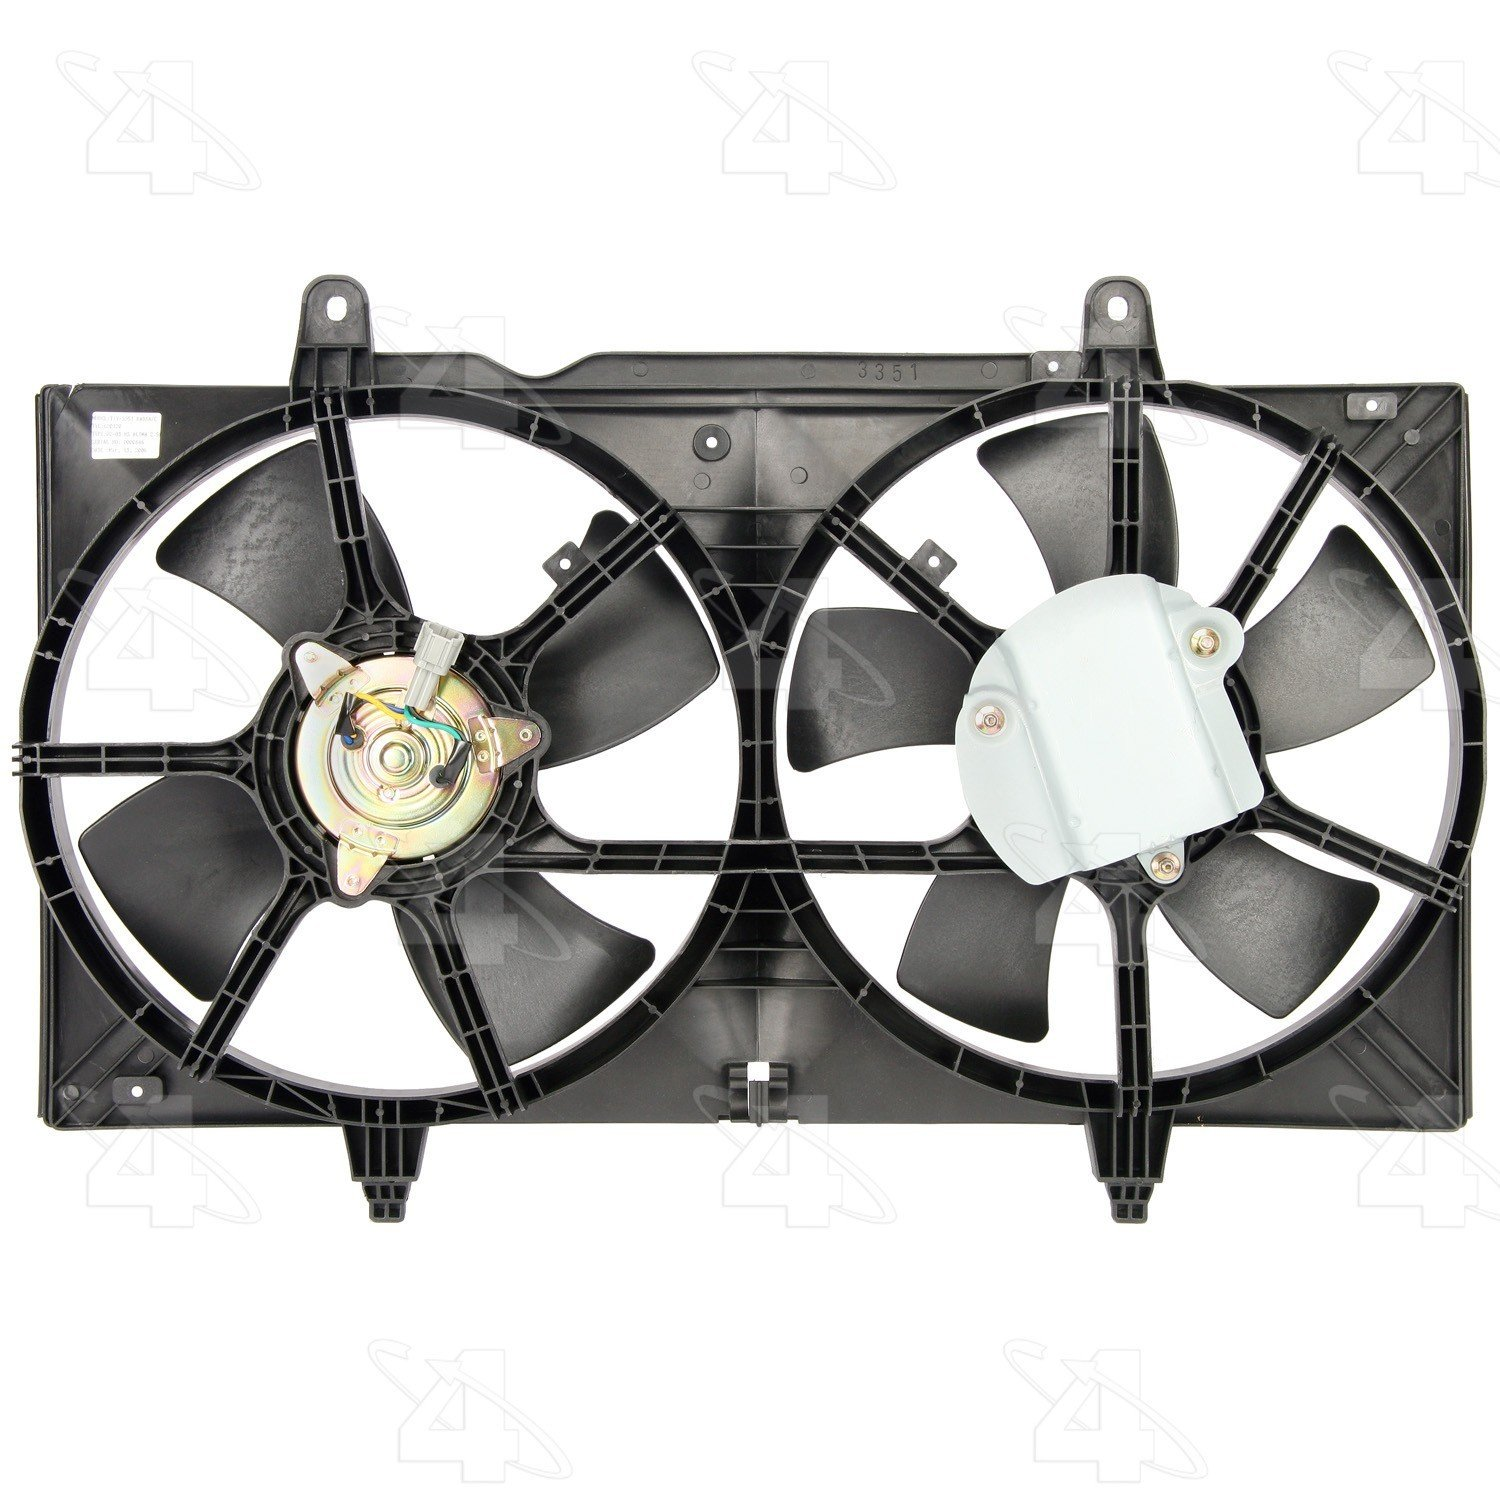 Four Seasons 75362 Cooling Fan Assembly